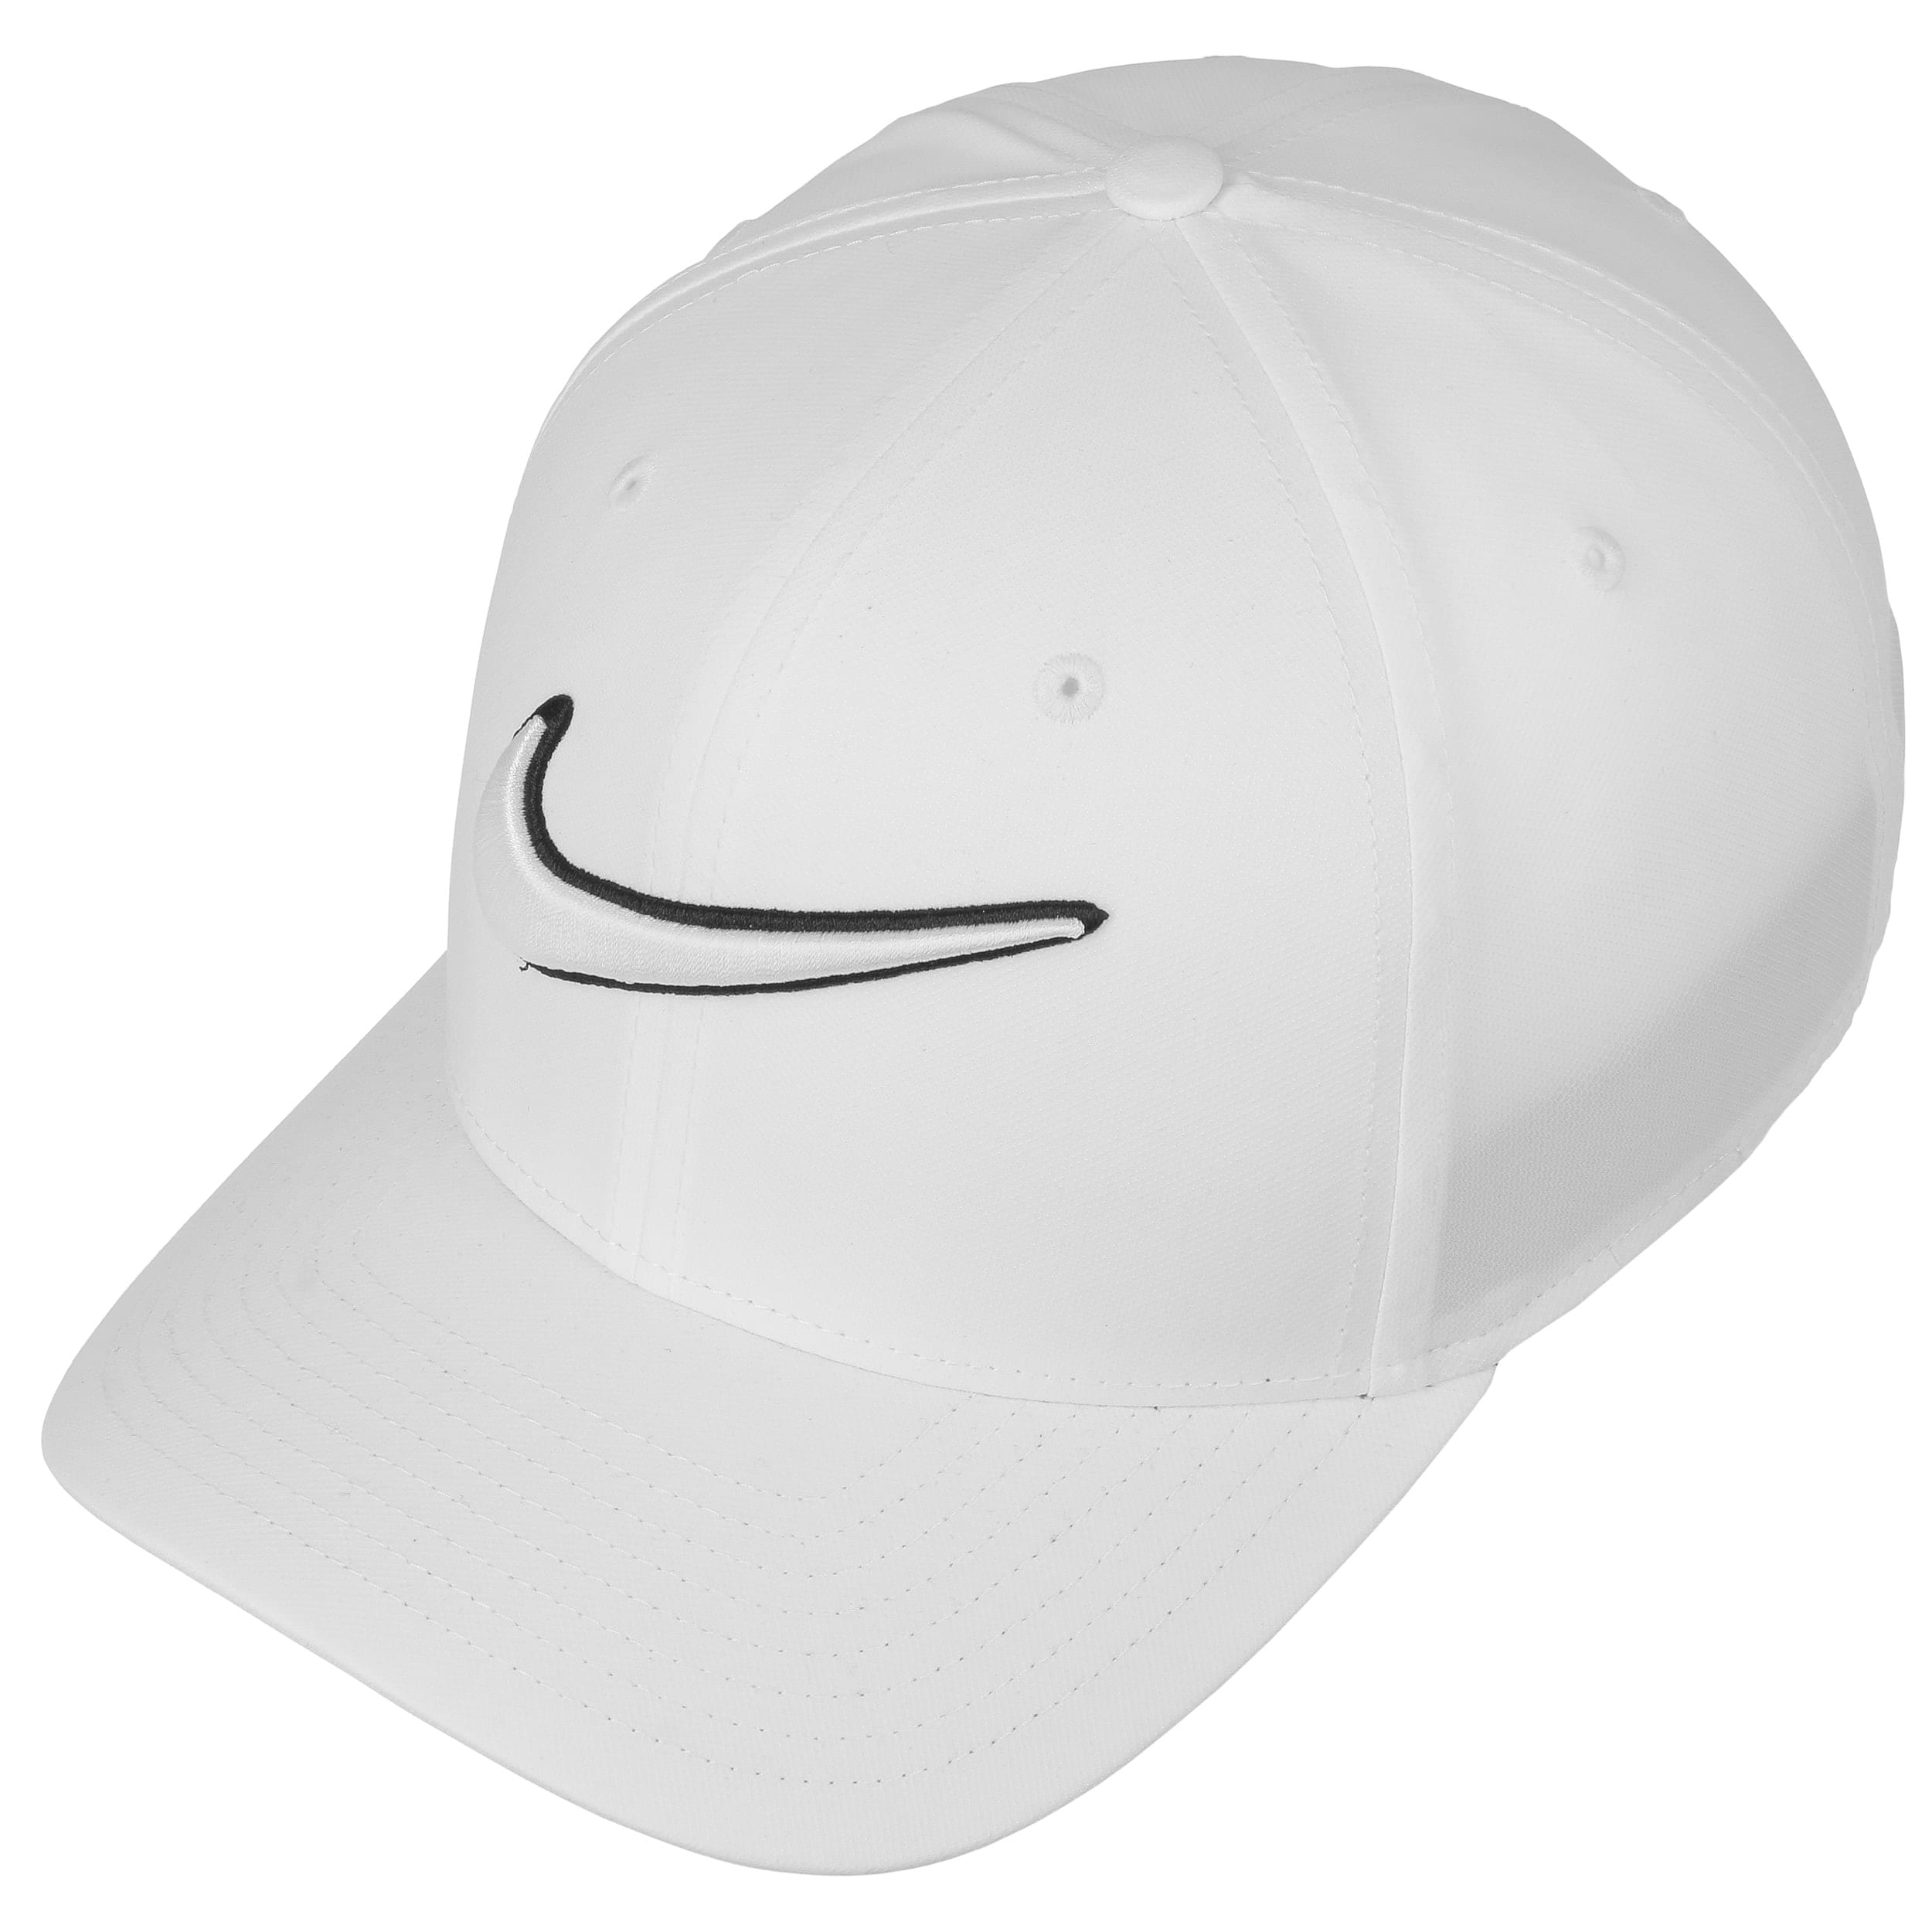 ede5896506d ... Golf Classic 99 Performance Cap by Nike - white 1 ...